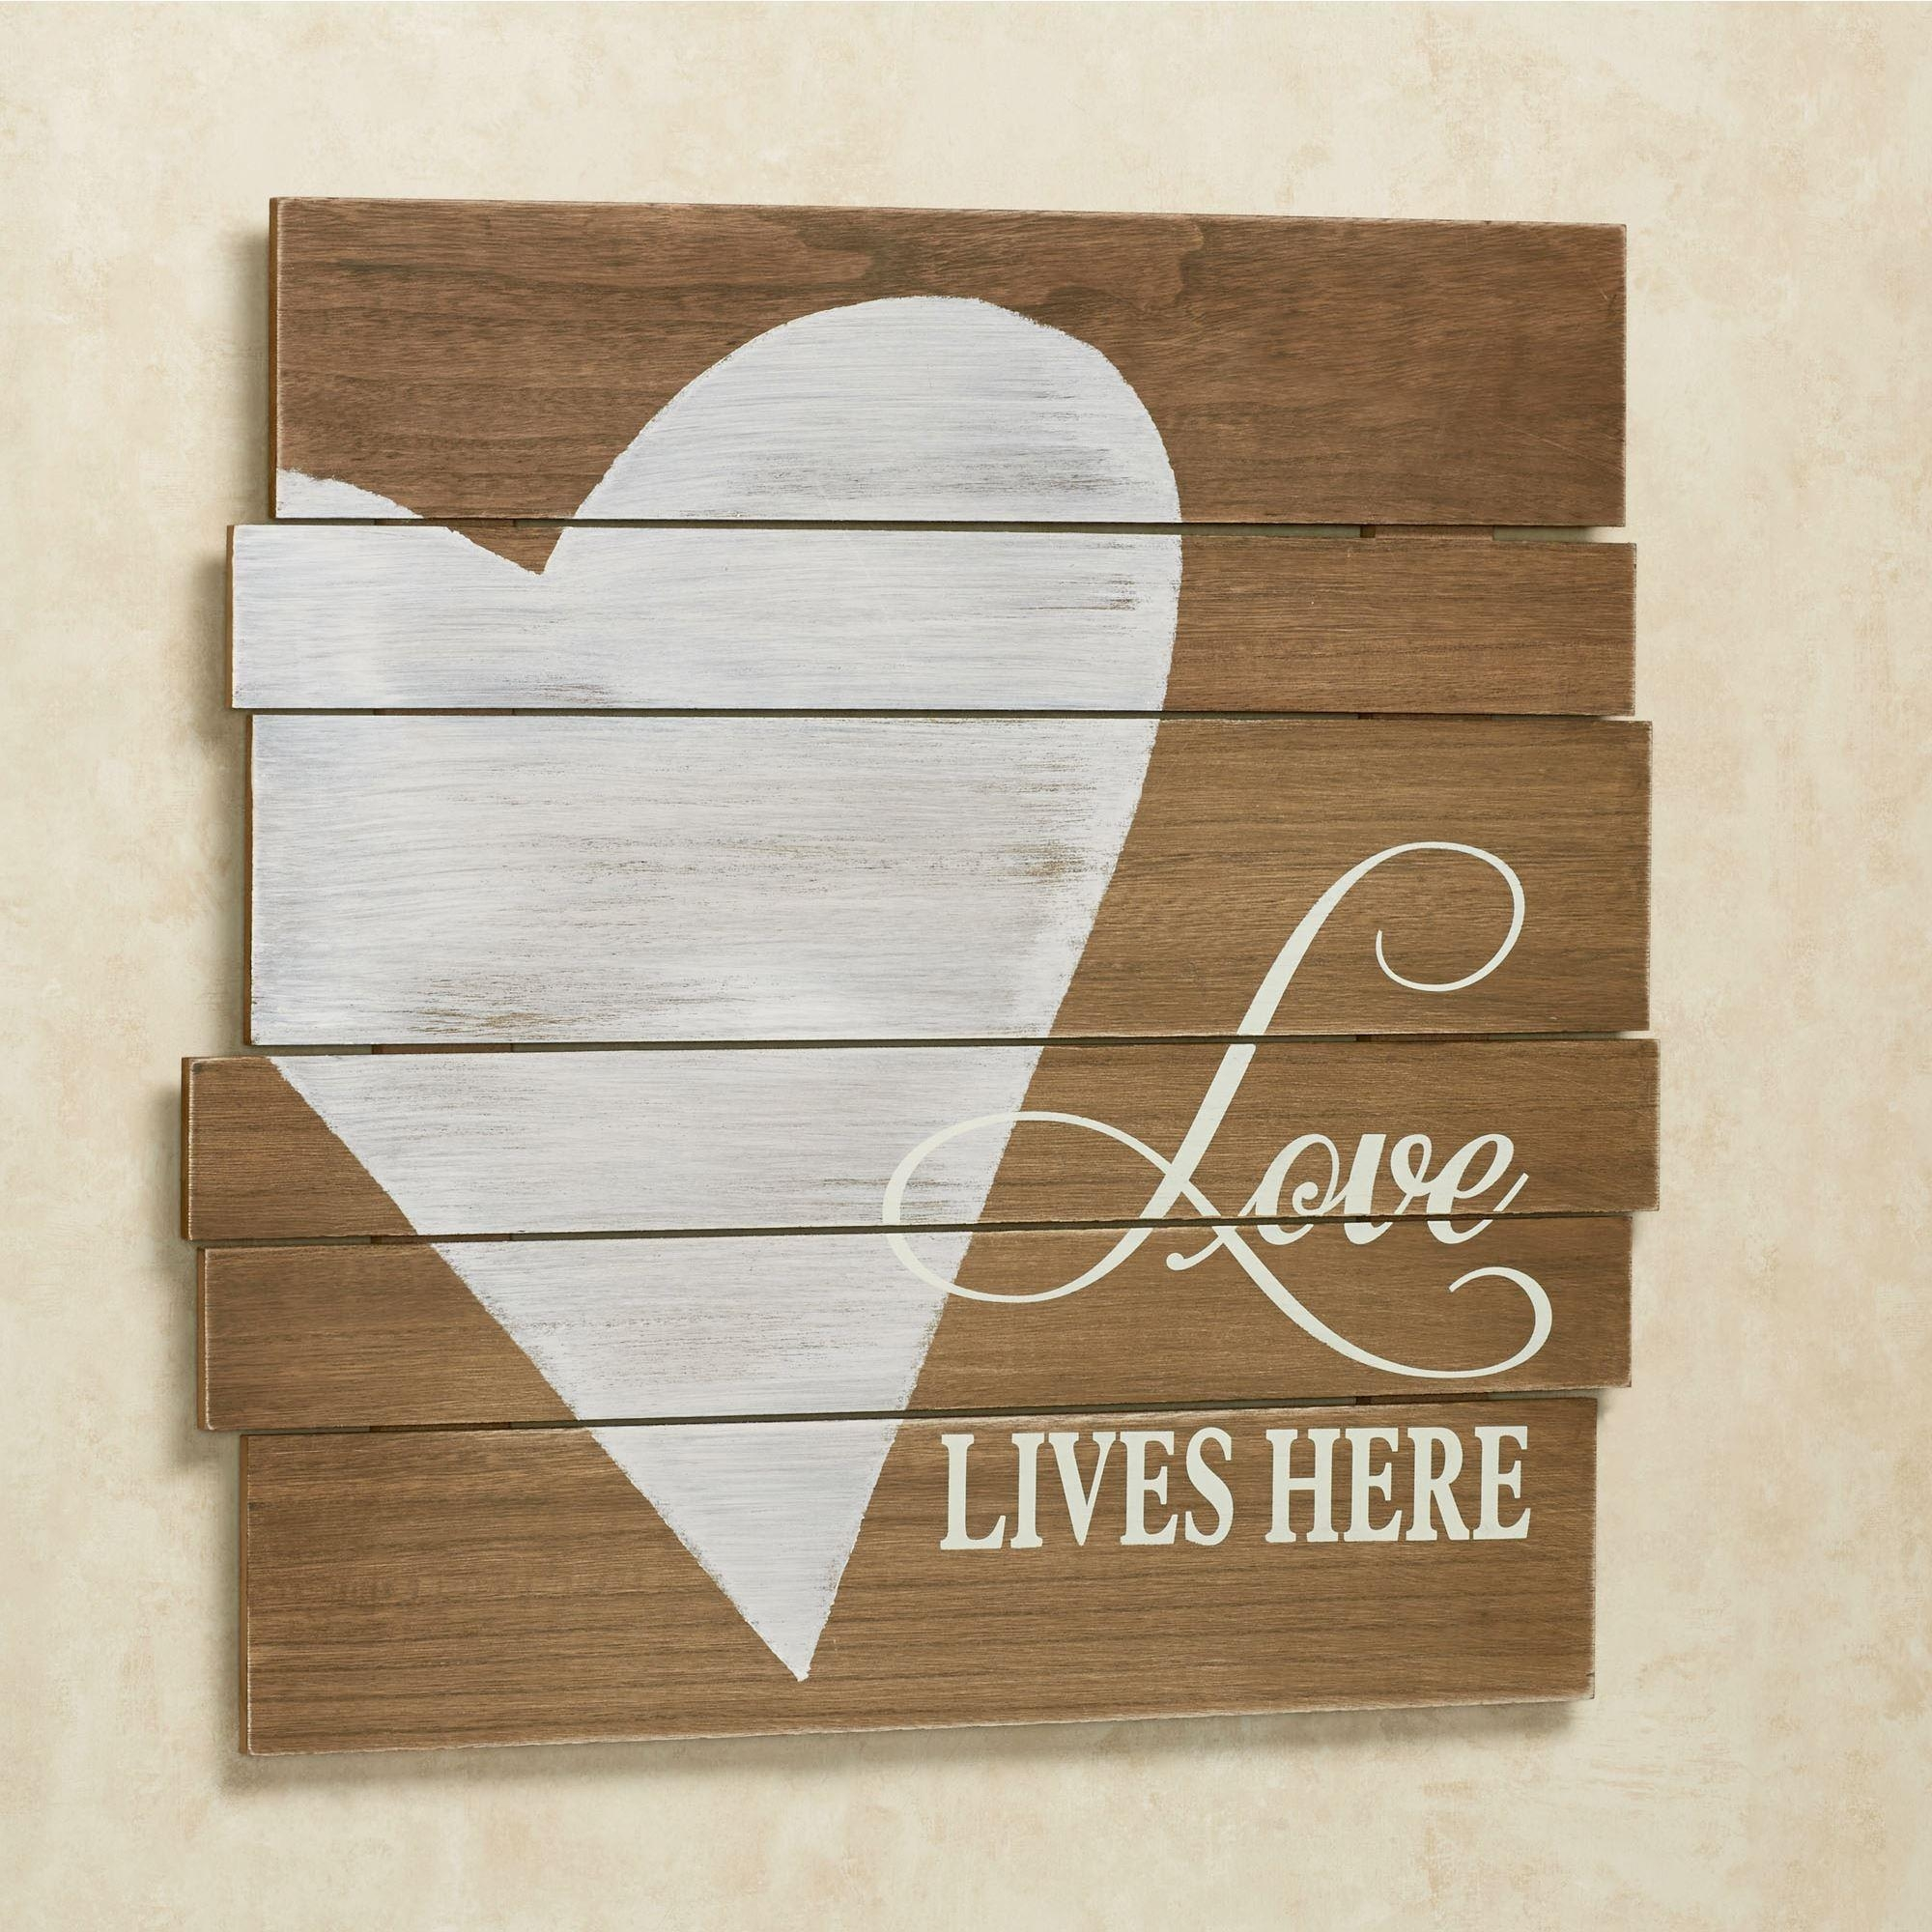 Love Lives Here Wooden Wall Art Plaque Pertaining To Inspirational Wall Plaques (Image 10 of 20)